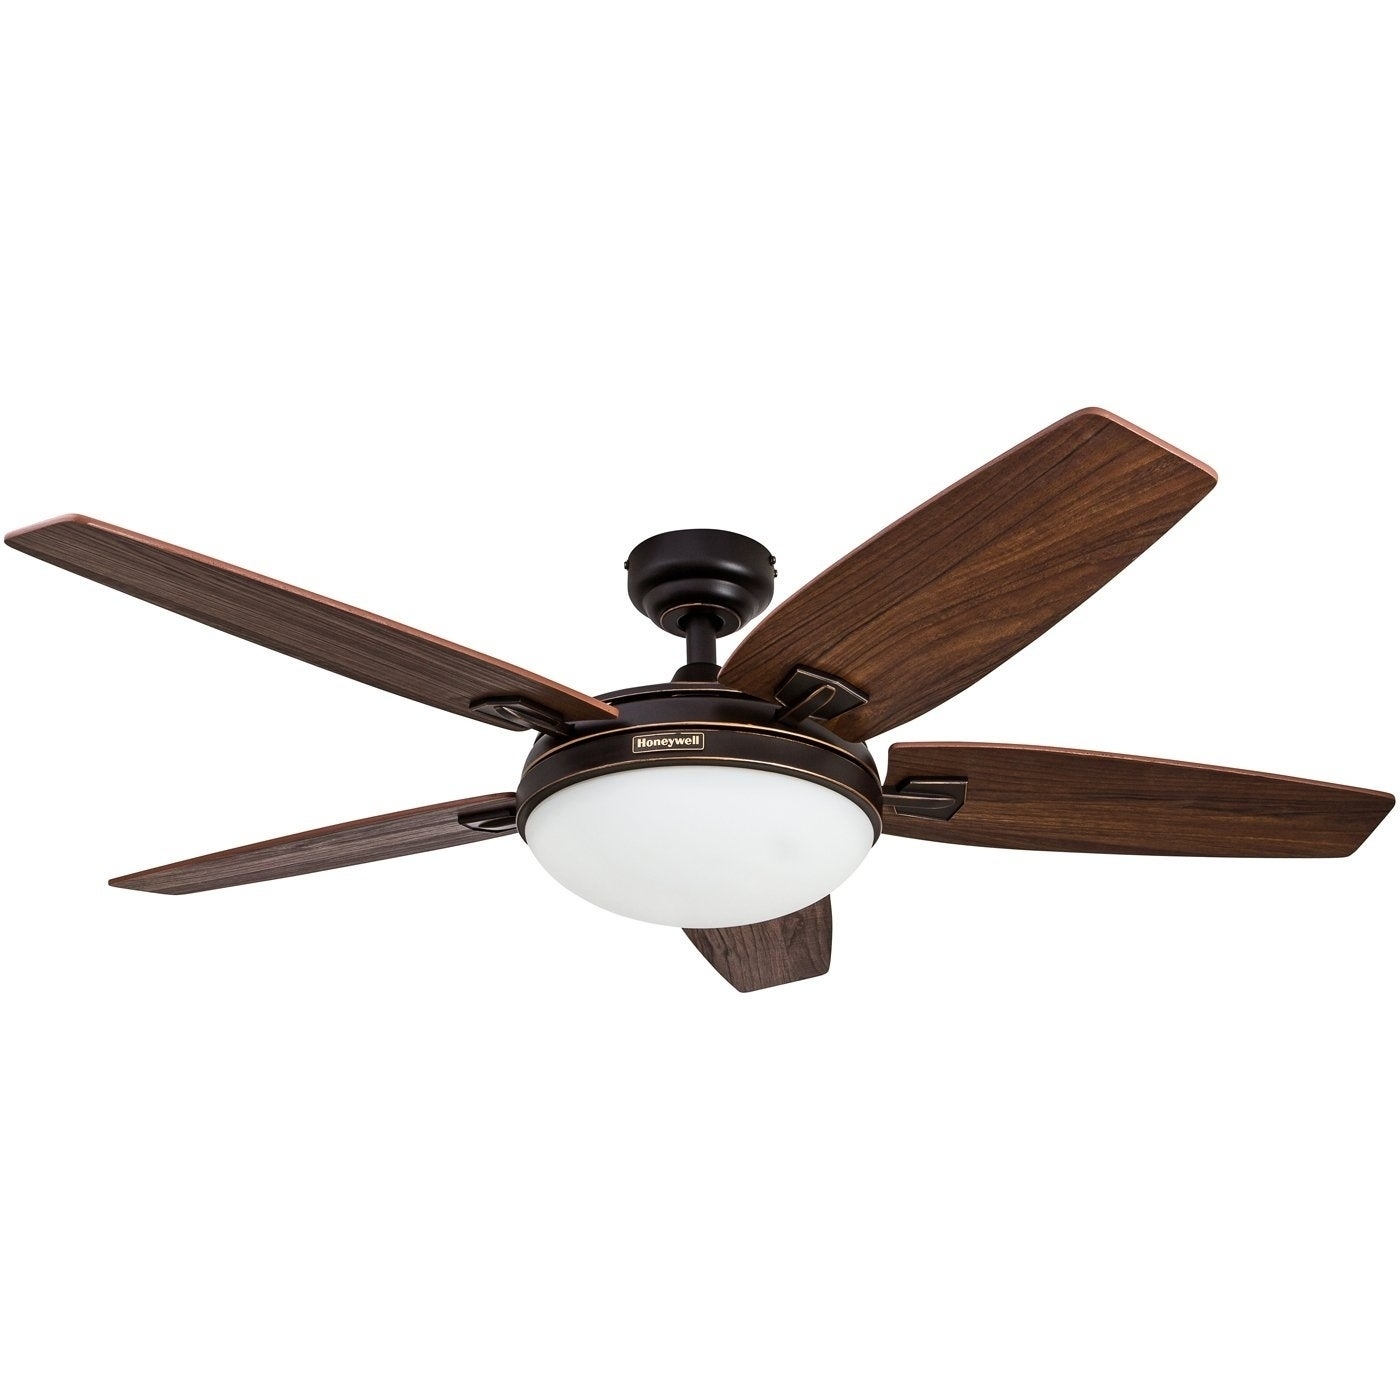 Shop Black Friday Deals On Honeywell Carmel Oil Rubbed Bronze Ceiling Fan With Integrated Light And Remote 48 Inch Overstock 16000063